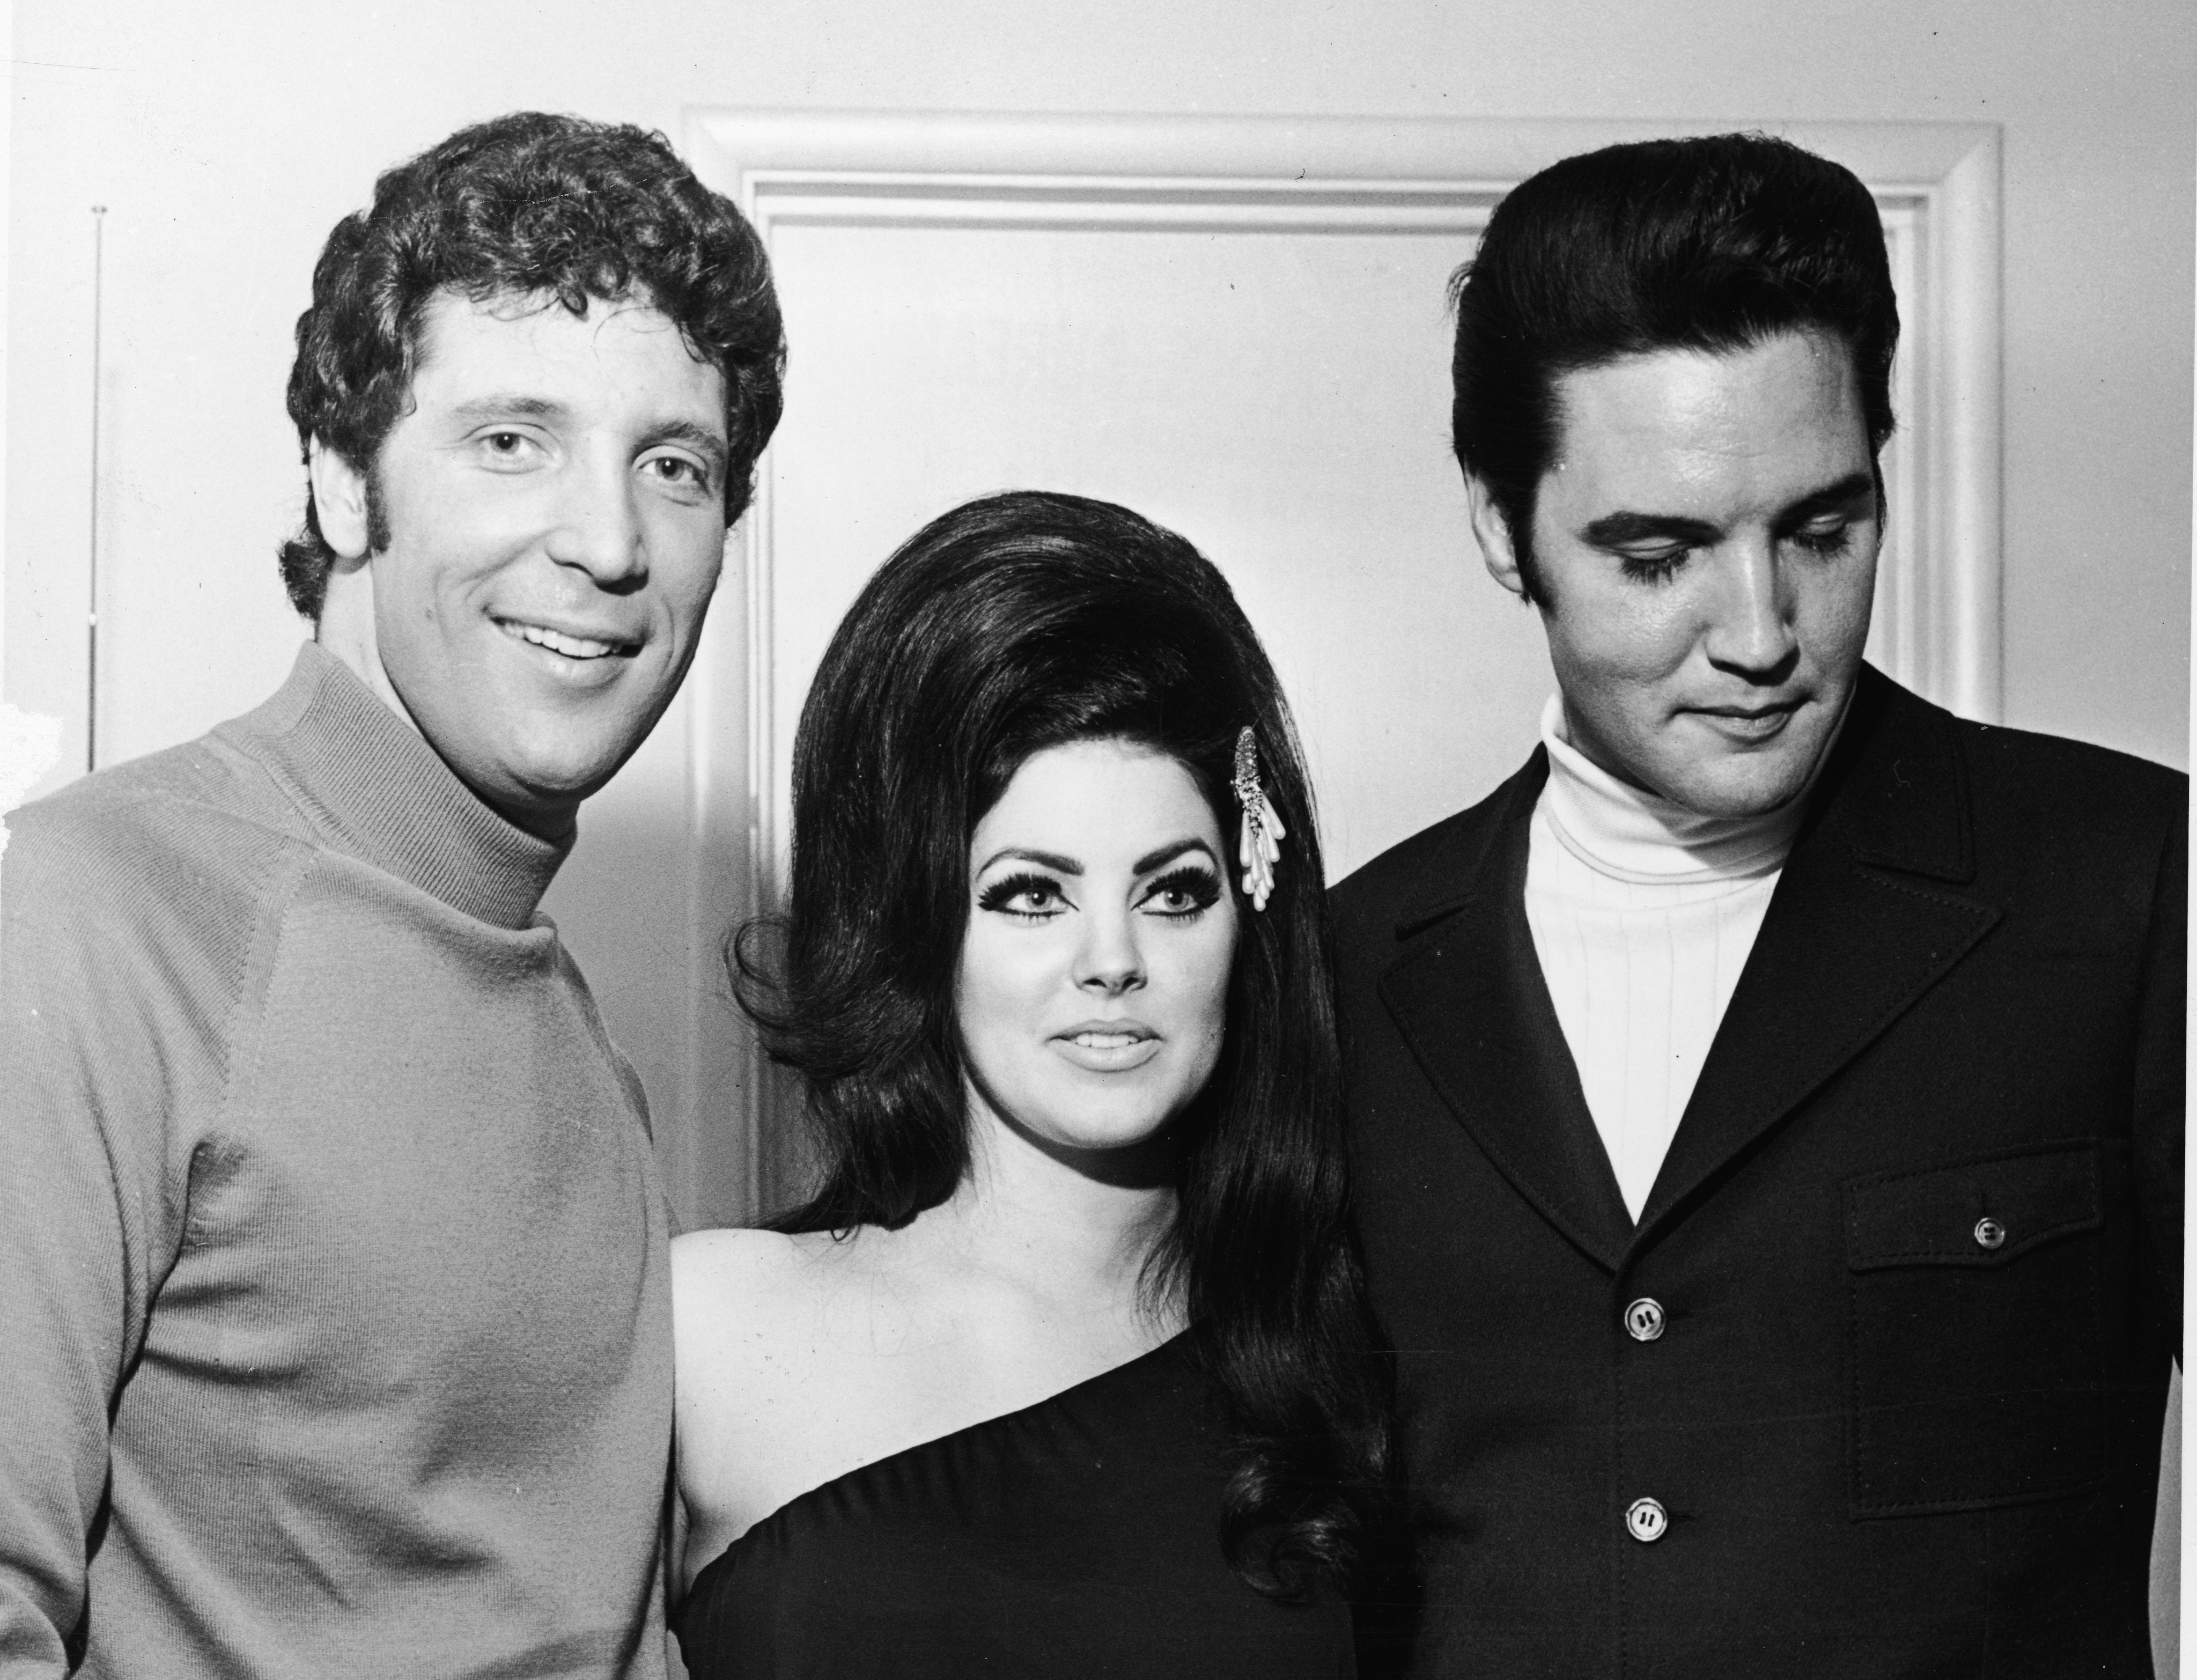 priscilla presley started dating elvis